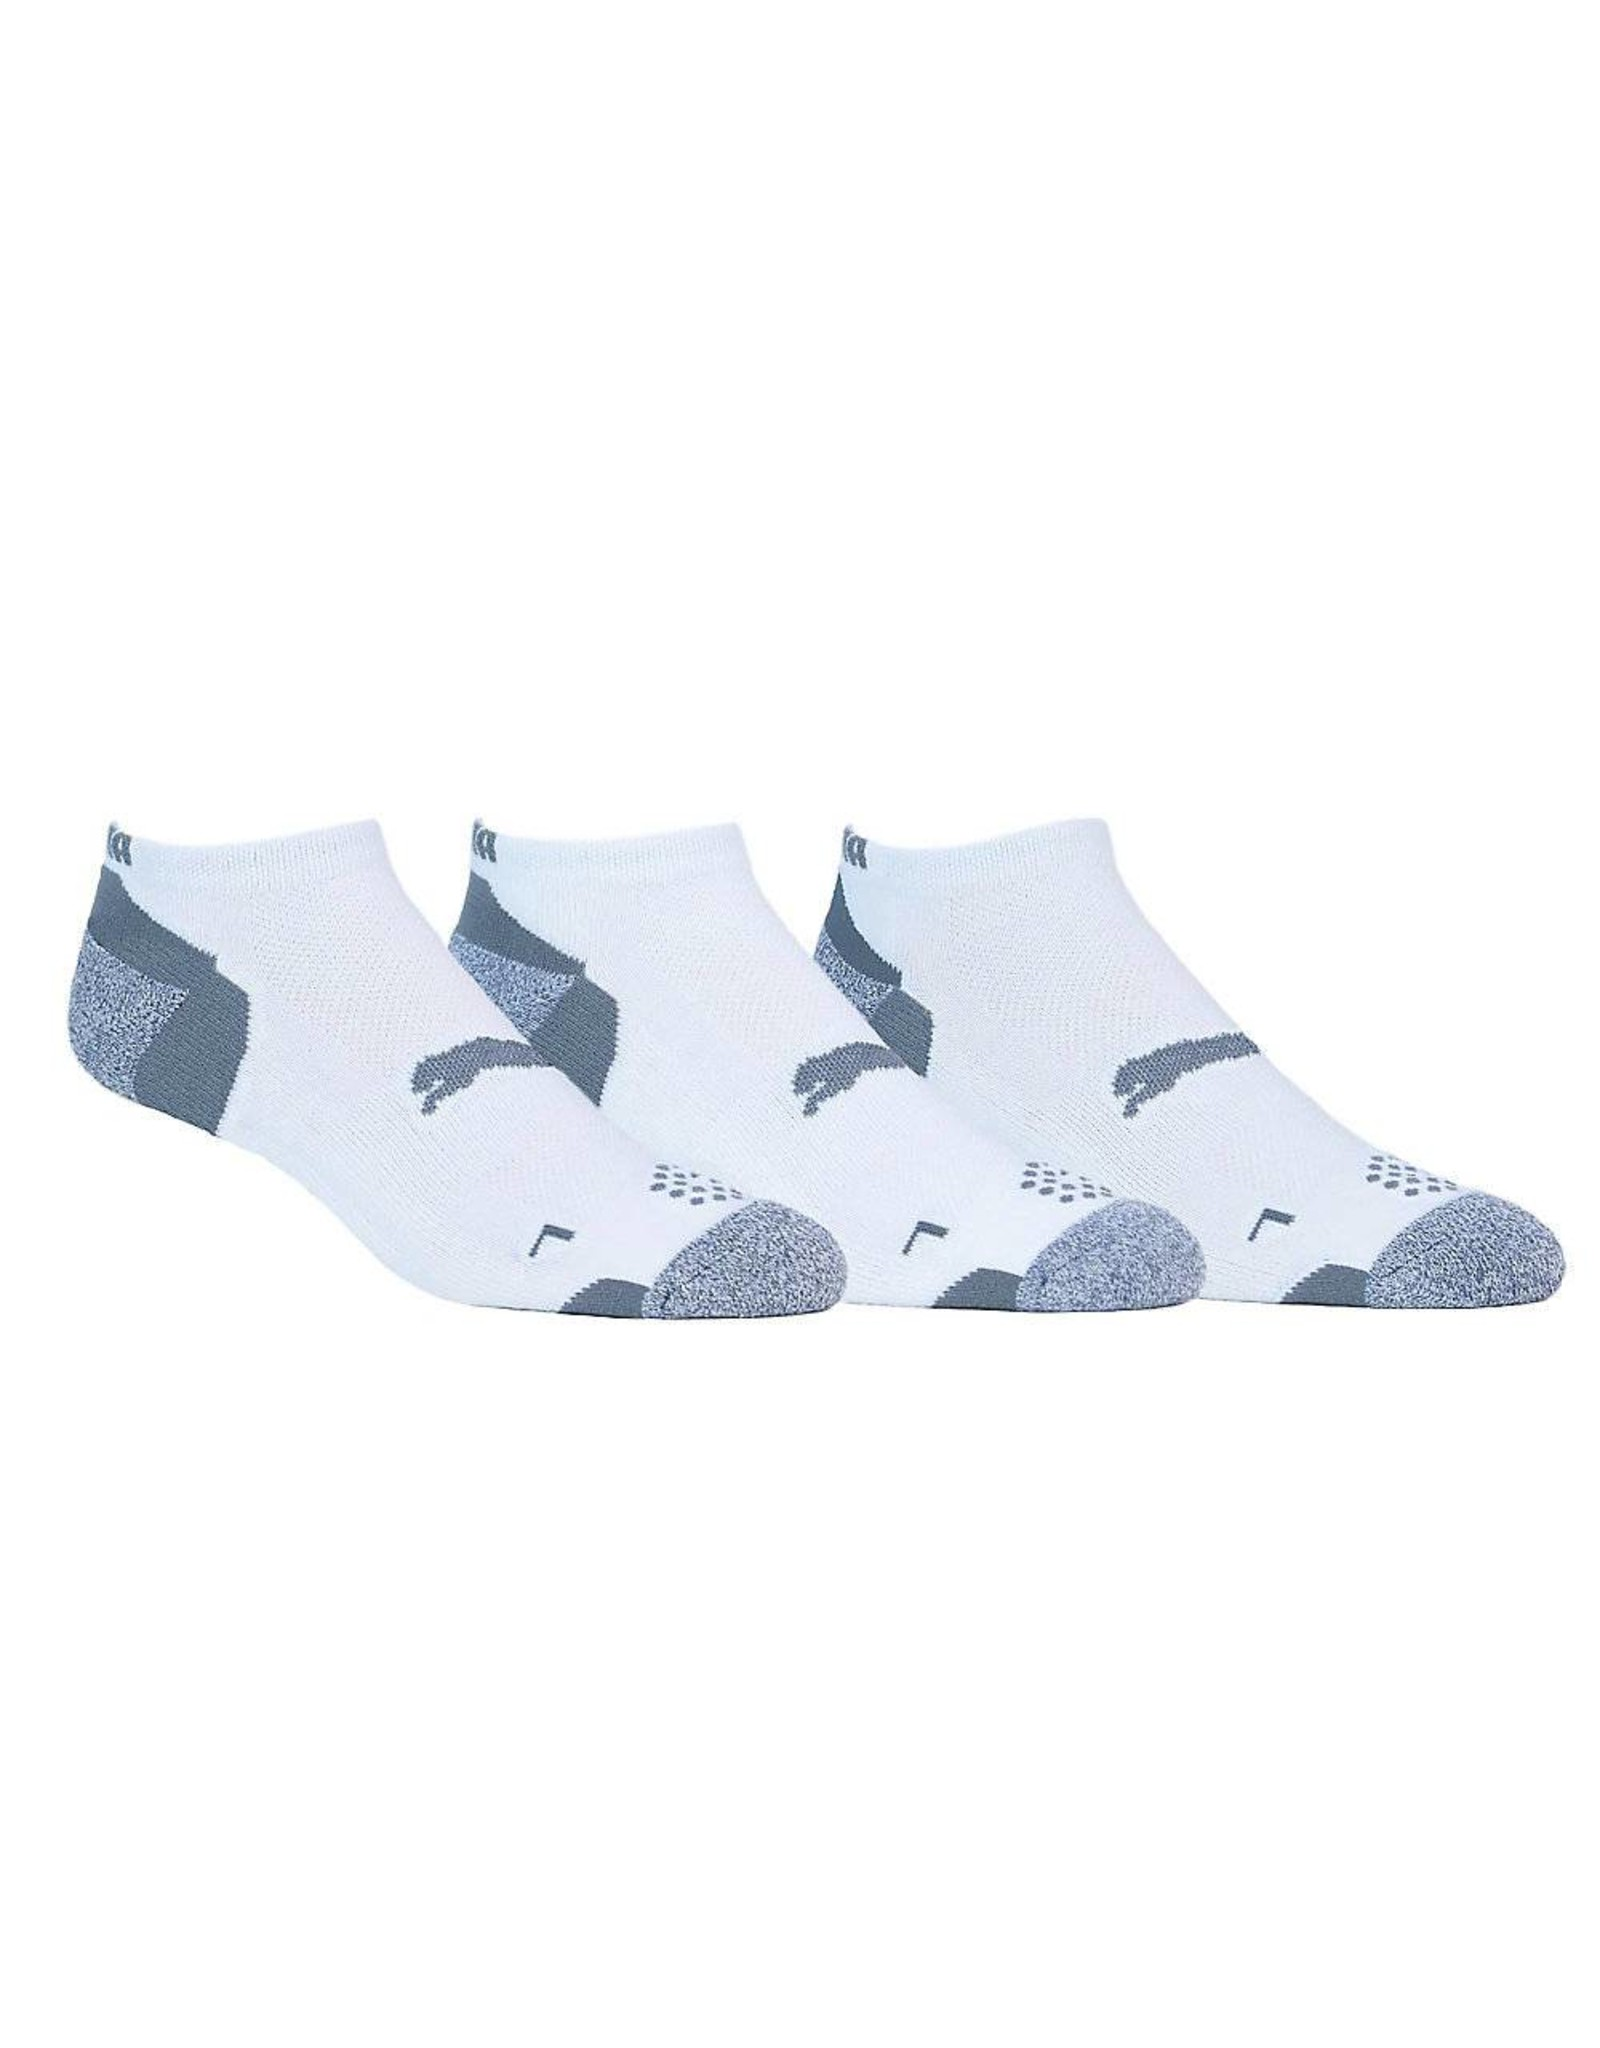 Puma Golf Puma Mens Pounce Low Cut Socks - 3 per pack